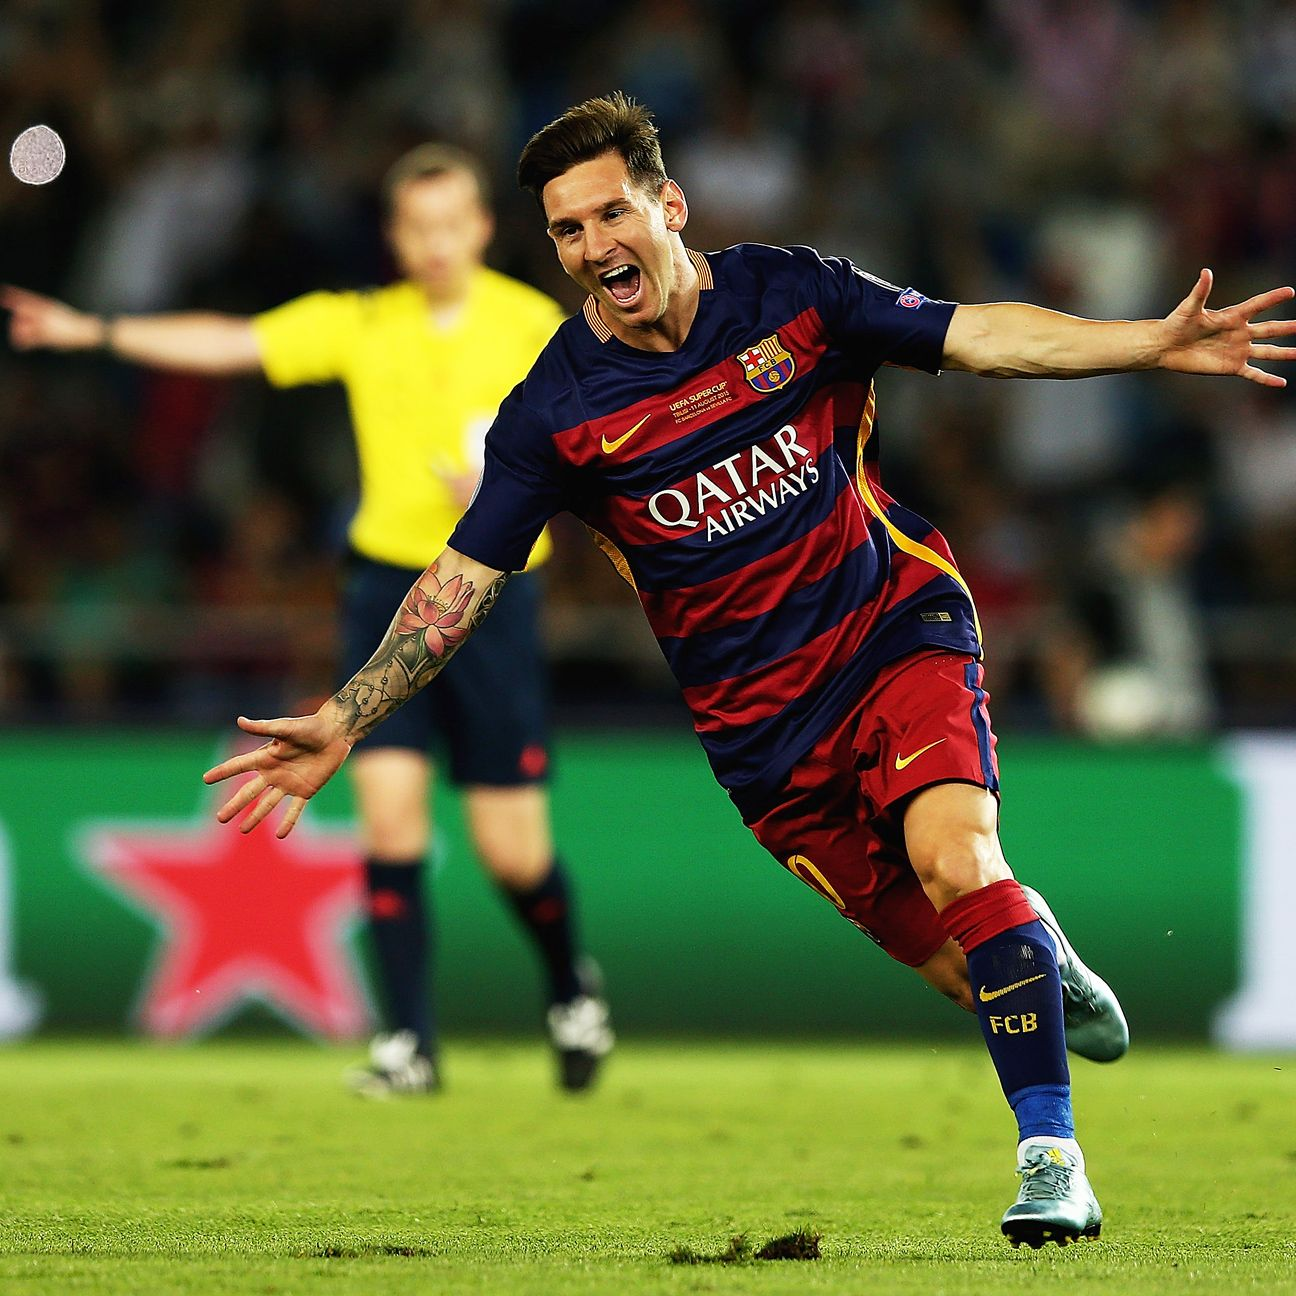 Lionel Messi produced a masterclass in free kicks by netting twice from dead balls during the first half.